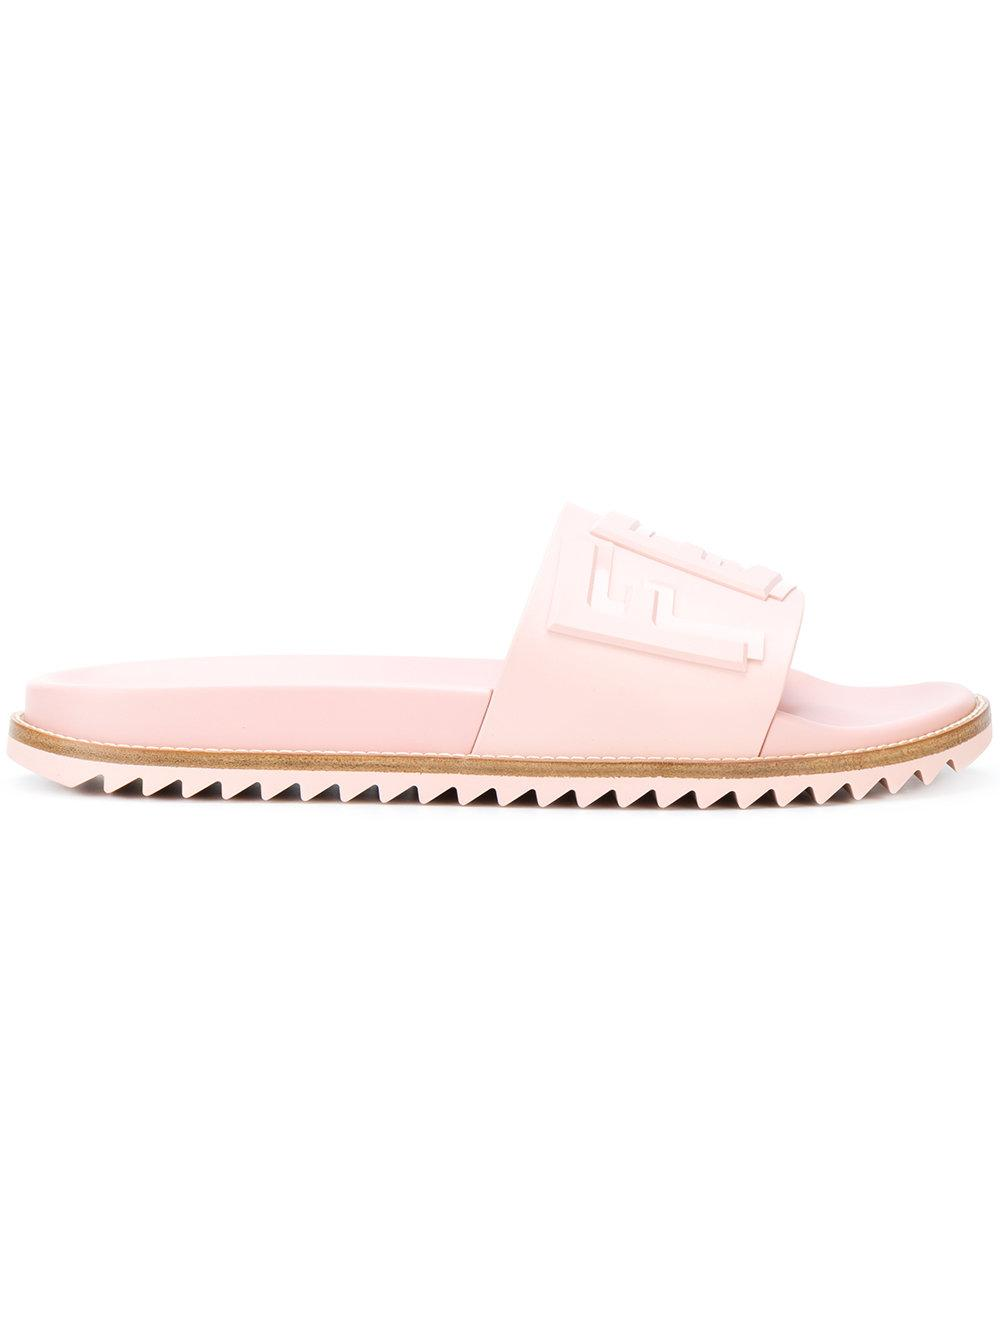 3fd5a92781b9d These pink logo embossed pool slides from Fendi featuring embossed  lettering across the ...